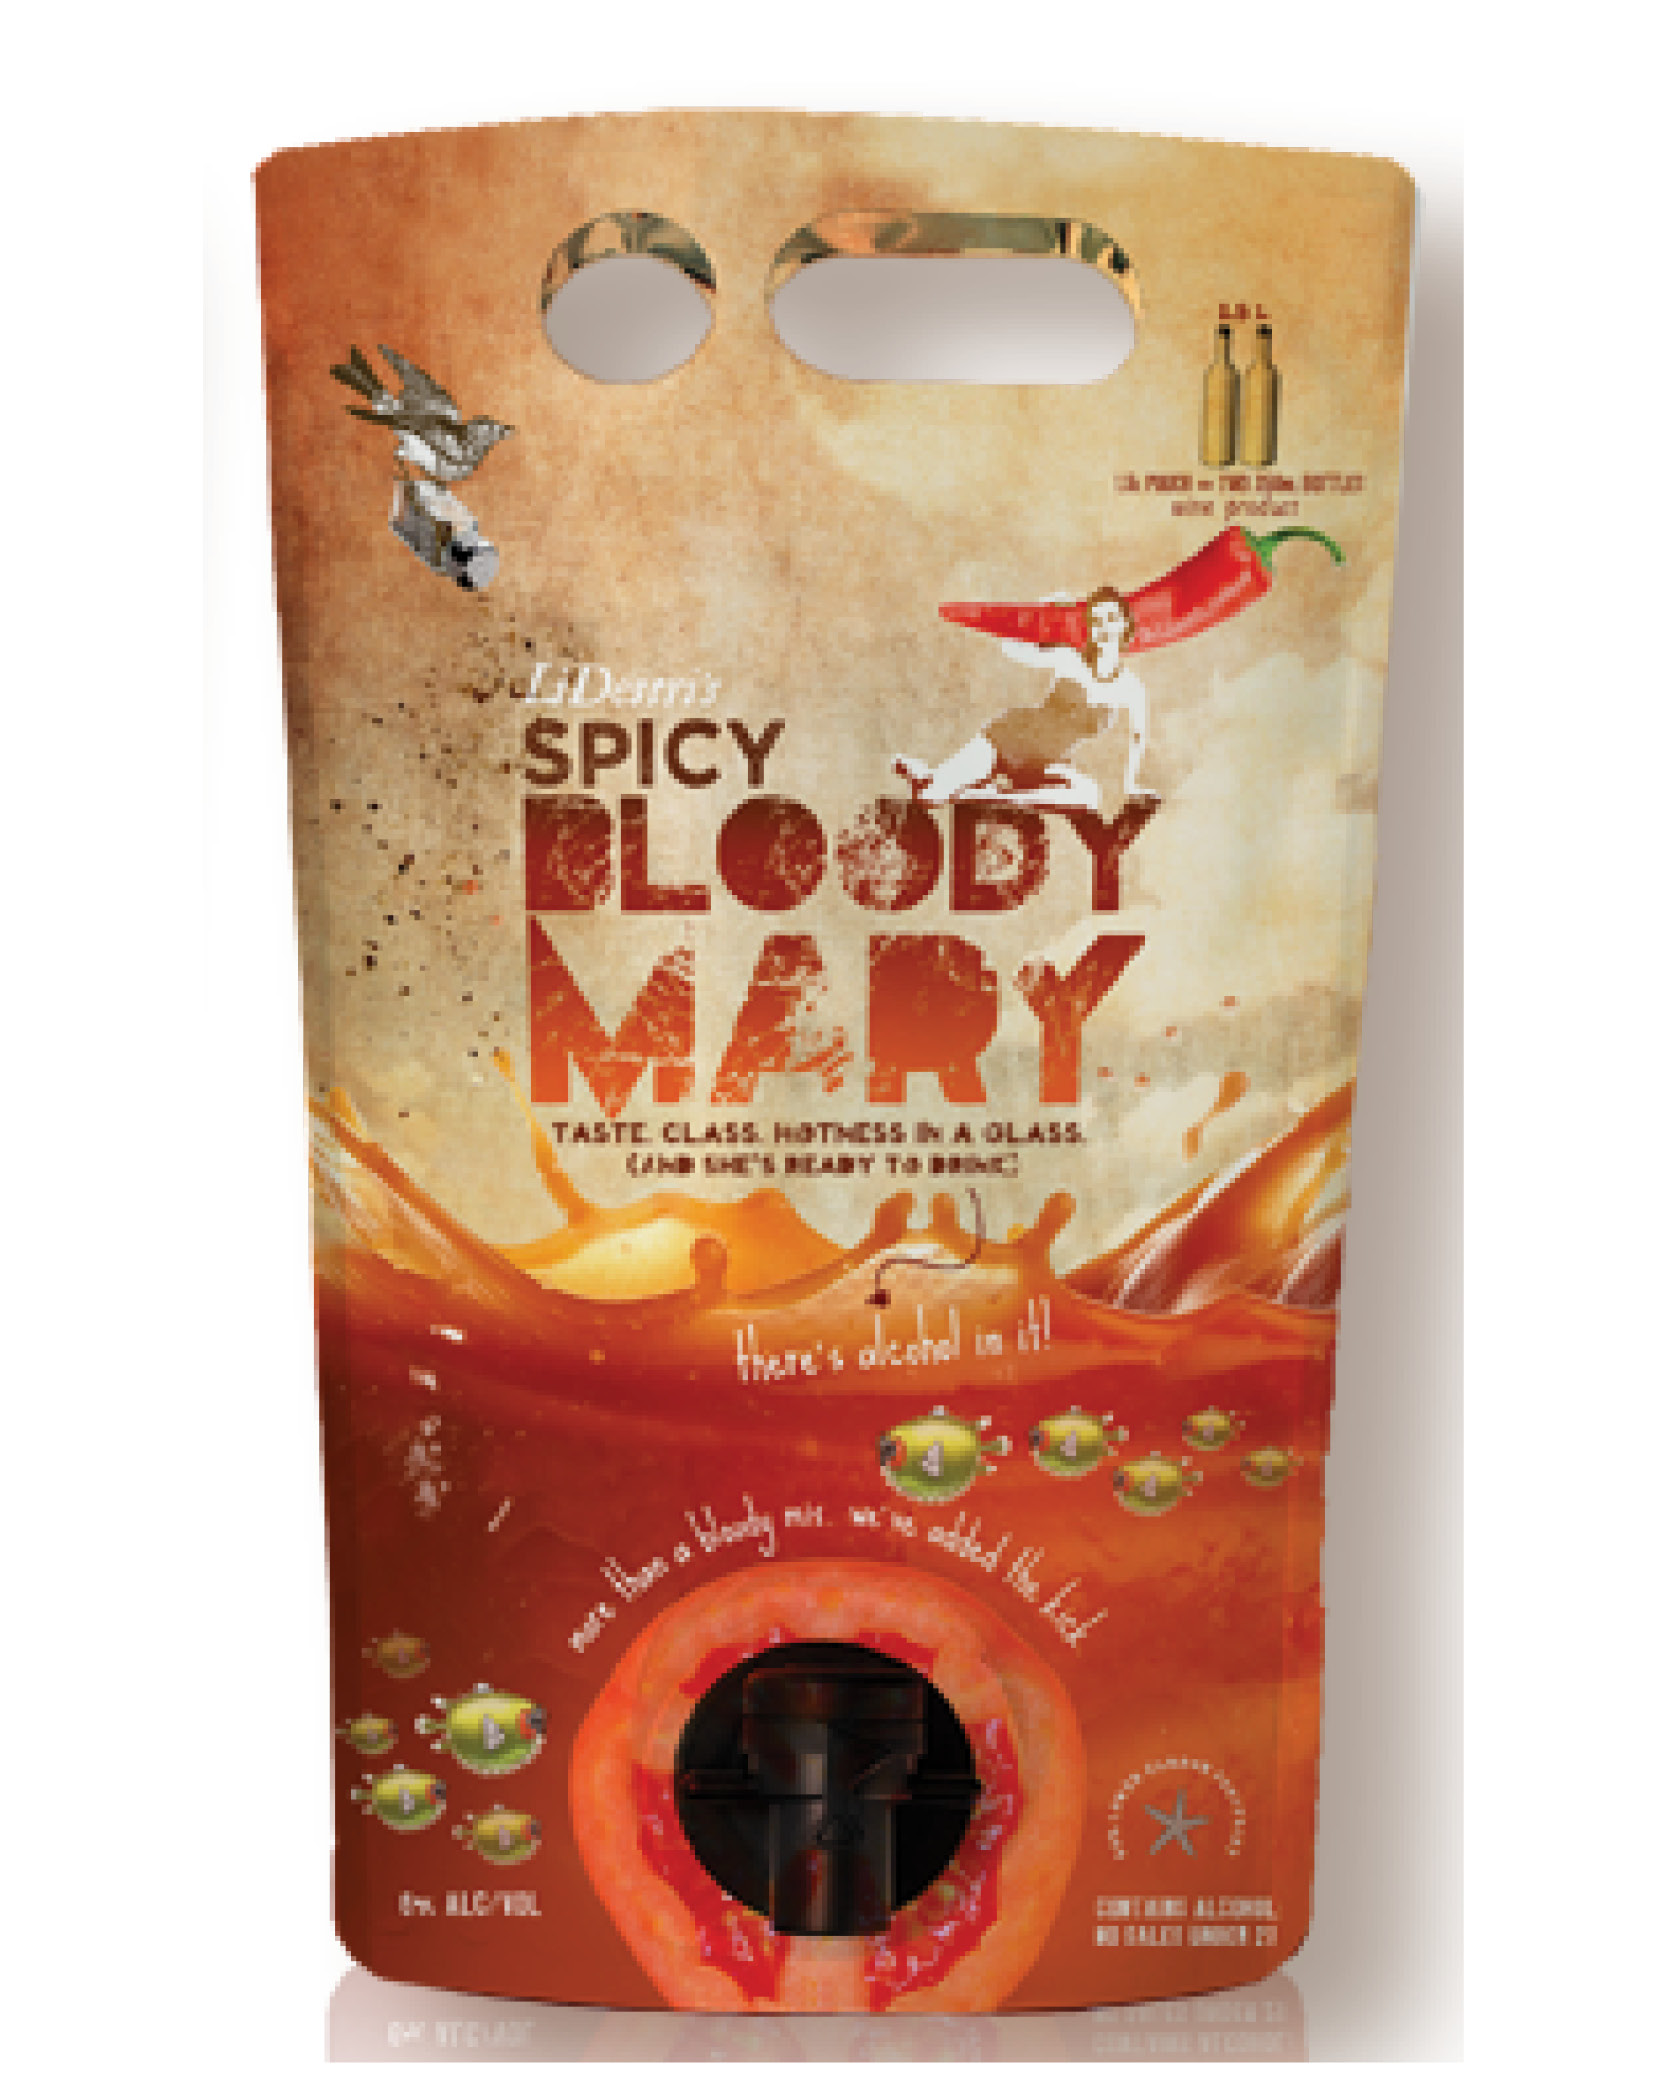 LiDestri Spicy Bloody Mary